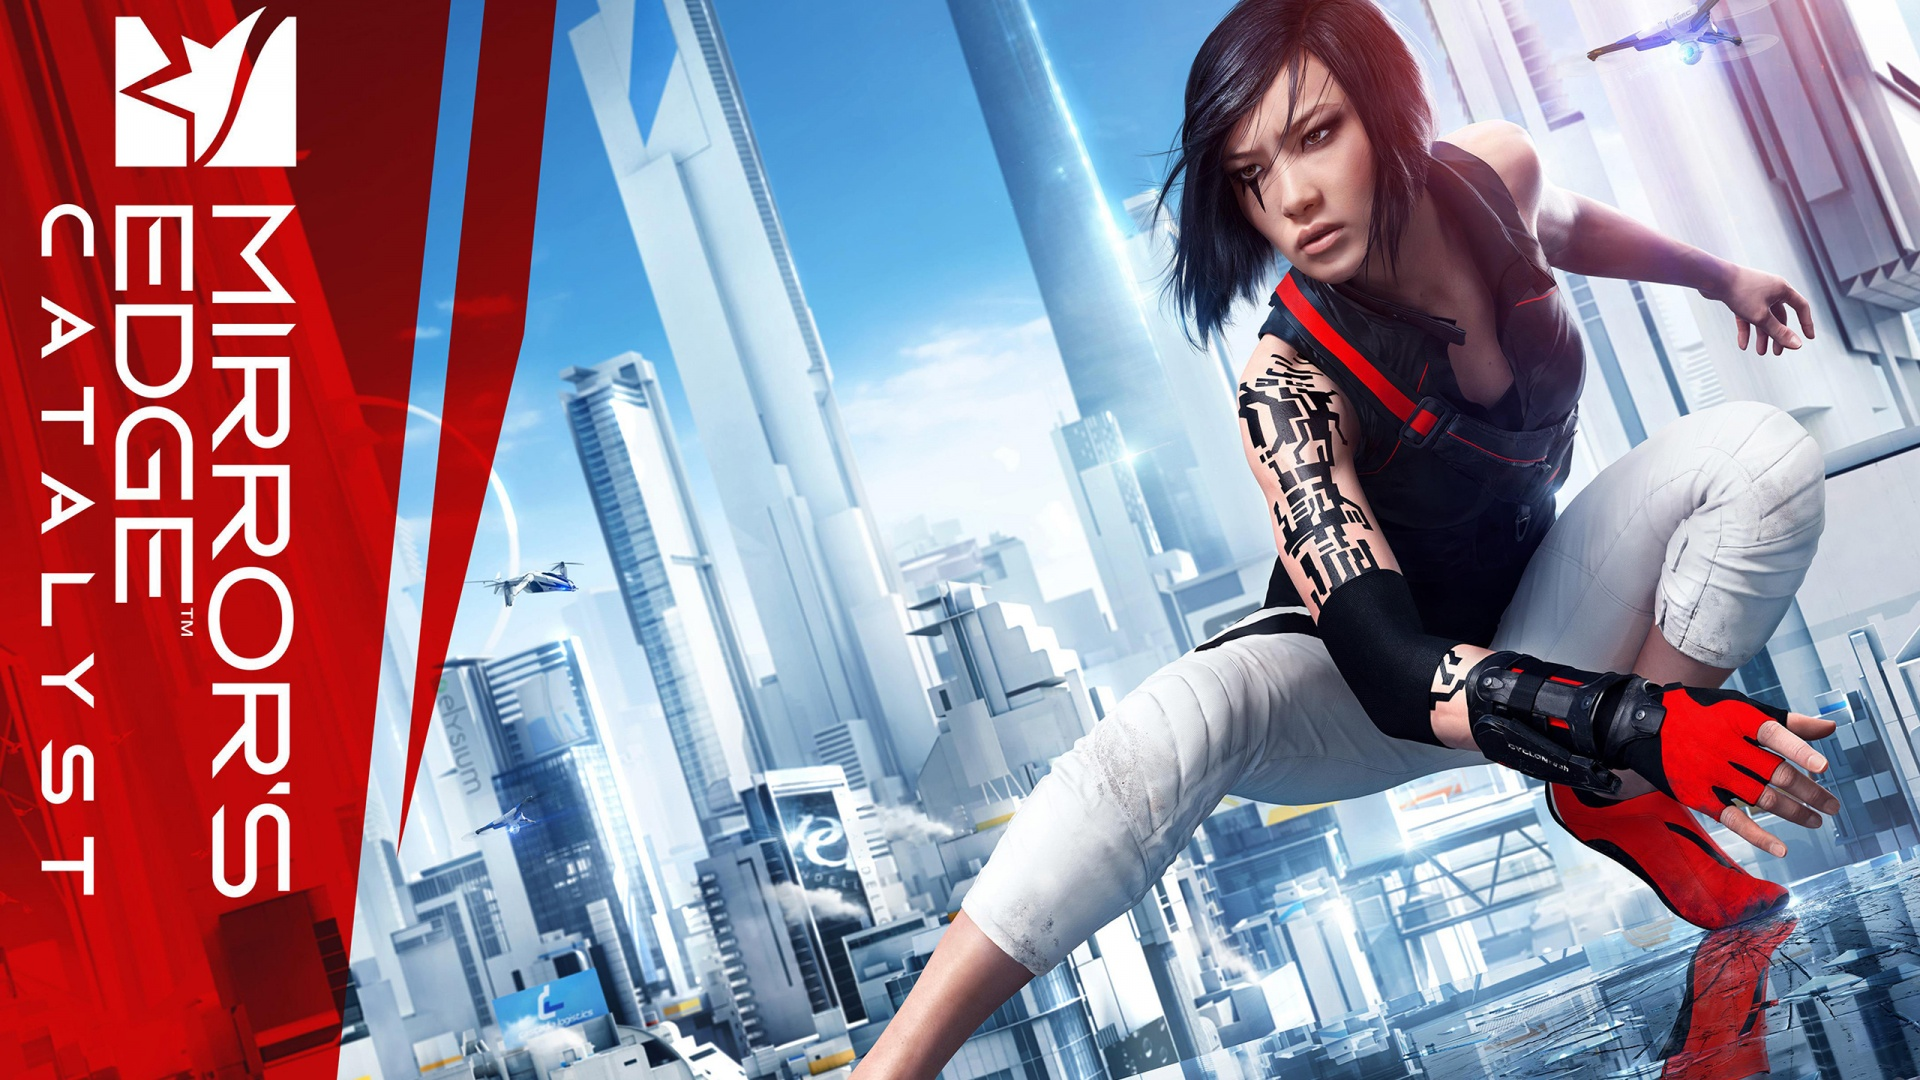 Mirrors-Edge-Catalyst-1920x1080-Need-iPhone-S-Plus-Background-for-IPhoneSPlus-wallpaper-wpc5807257